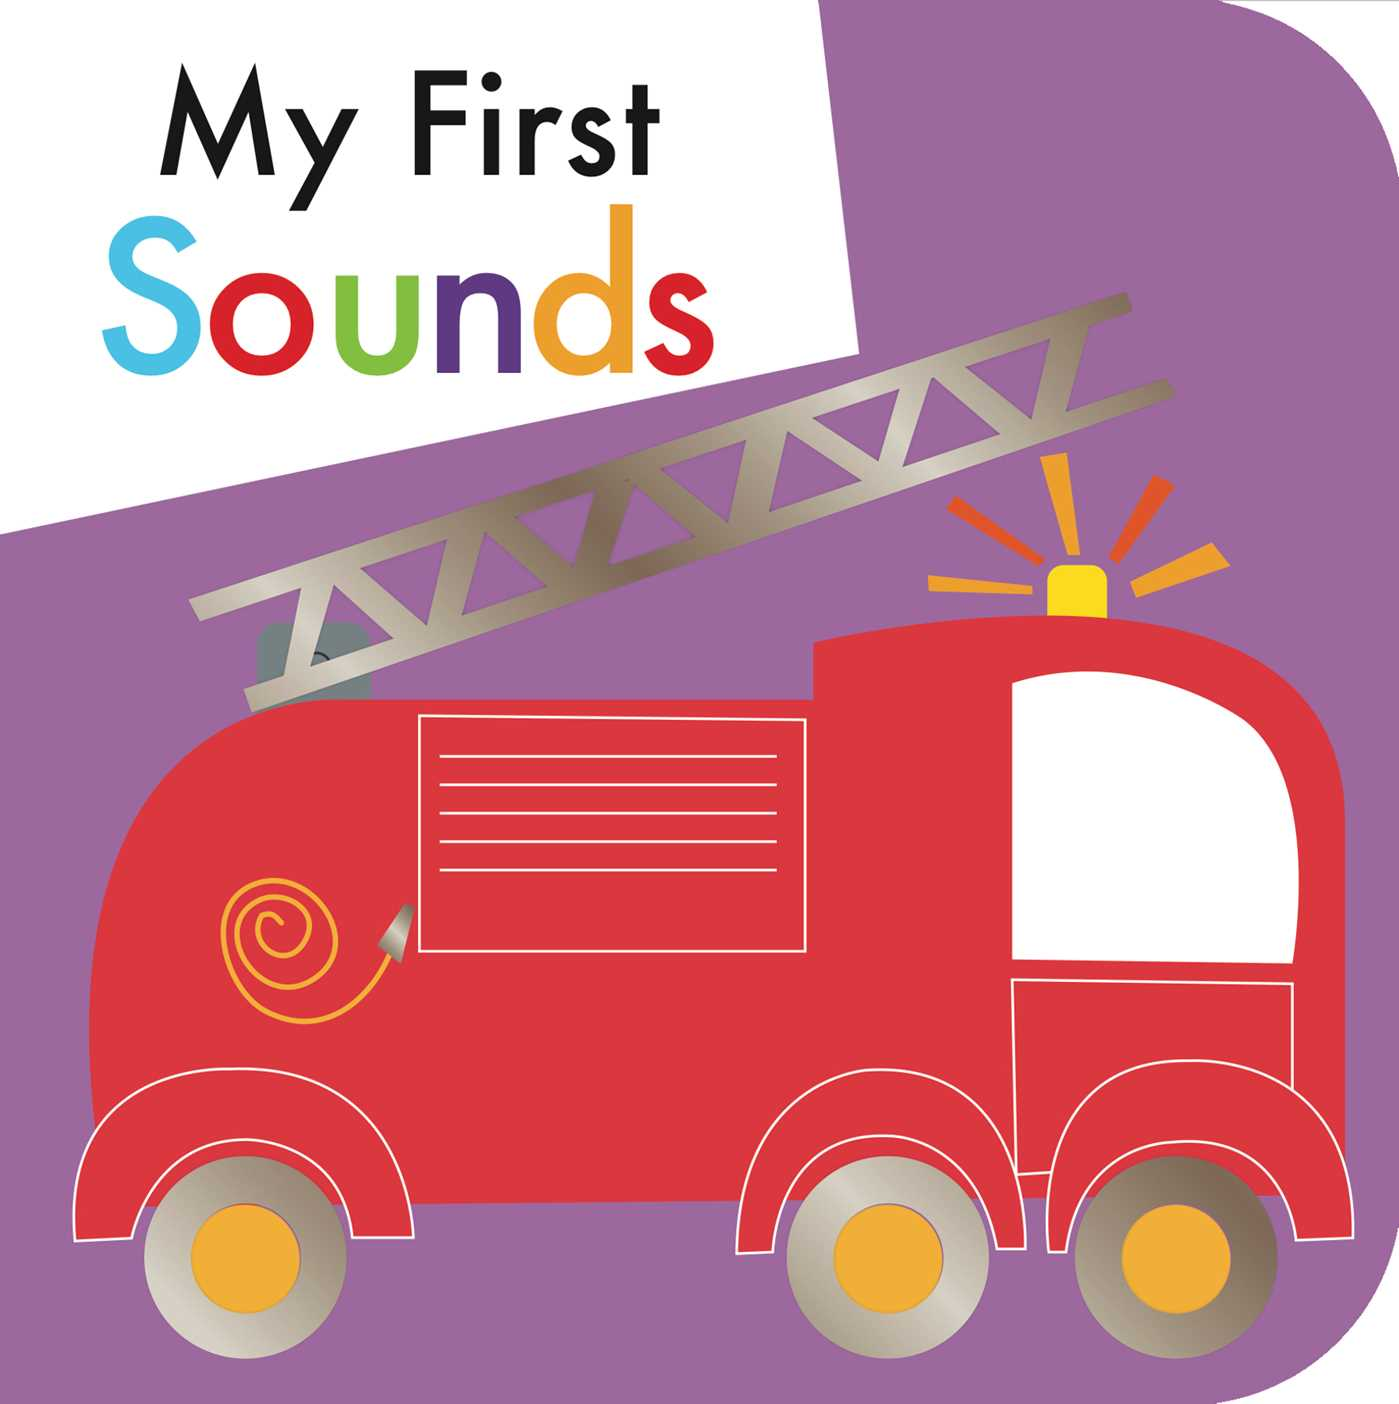 My First Sounds (Part of My First) Illustrated